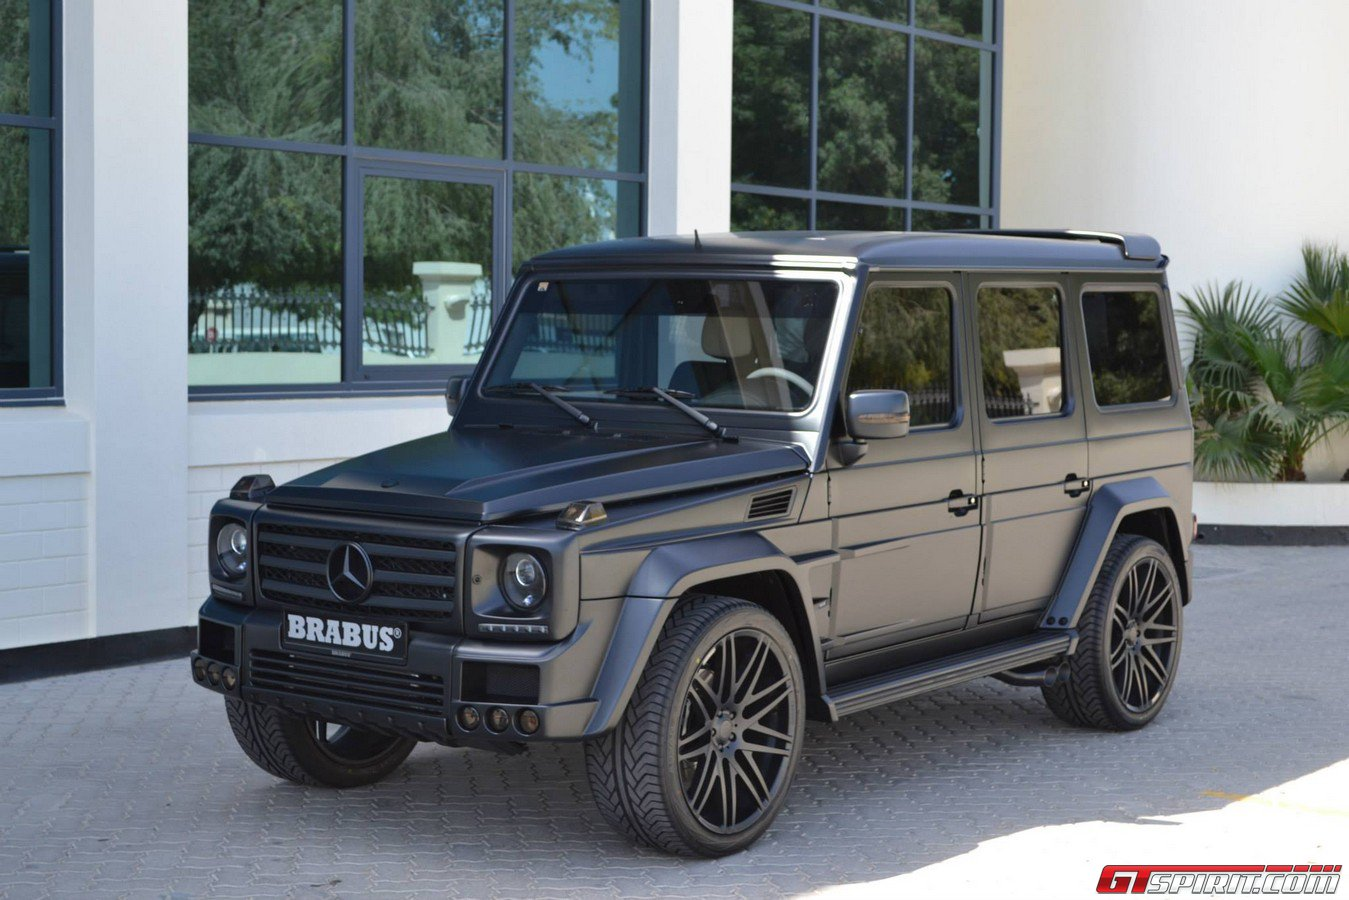 Gallery Matte Black Brabus Widestar G55 Amg In Saudi Arabia Gtspirit